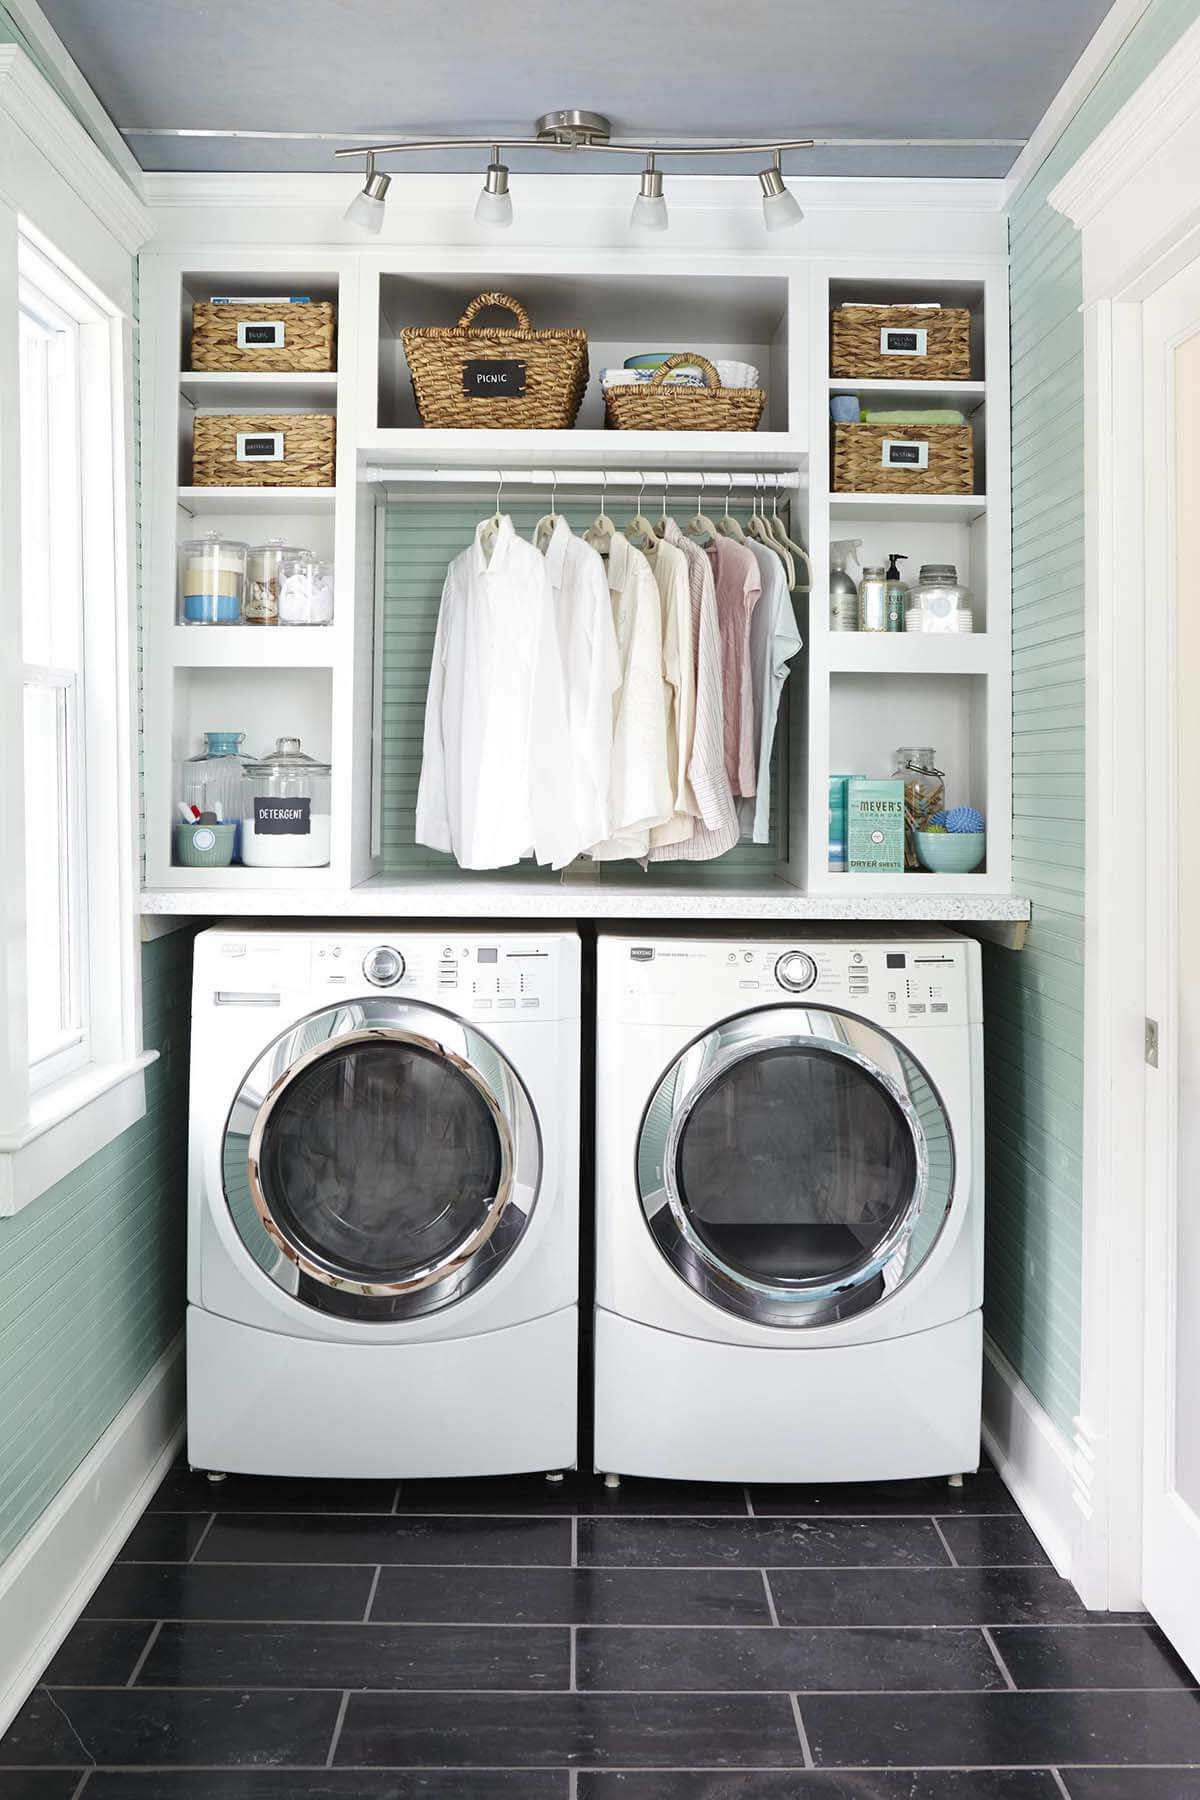 Enjoy the Sunshine in the Laundry Room